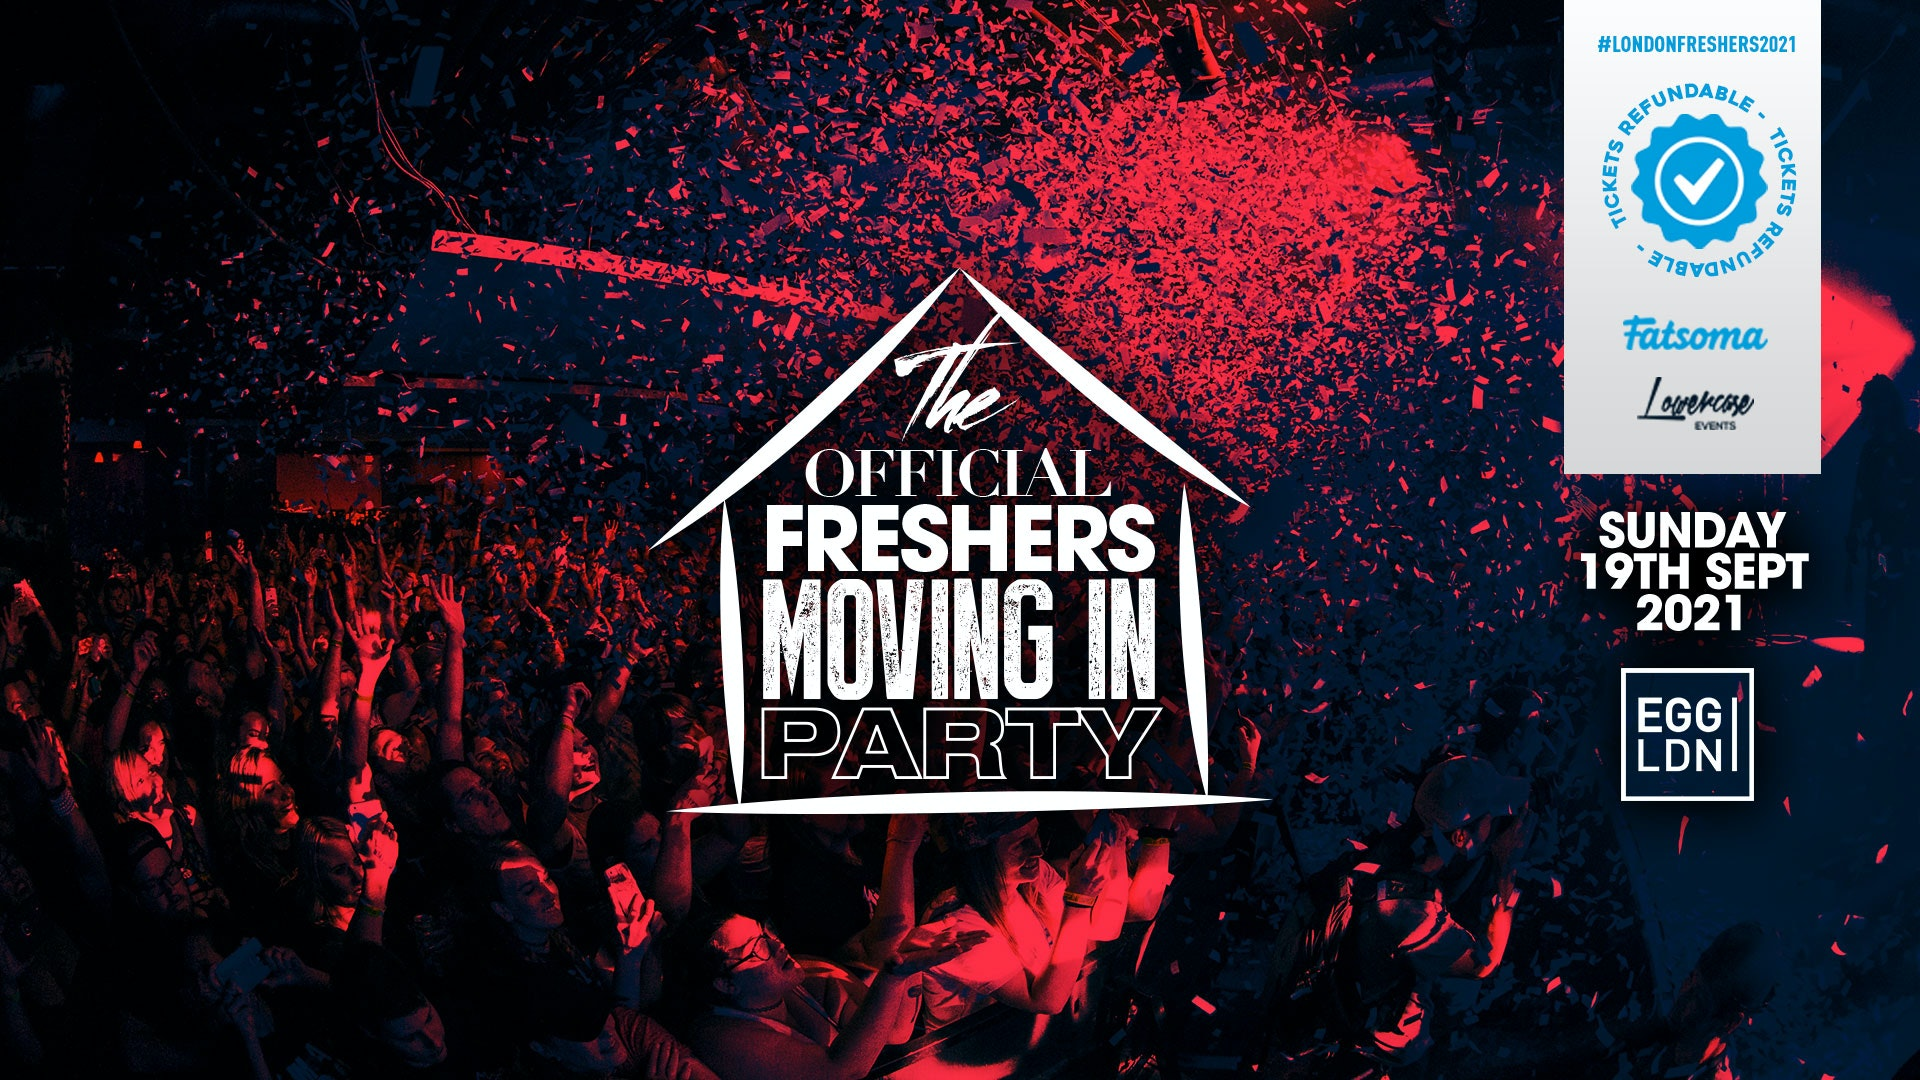 ⚠️LAST 100 TICKETS ⚠️ THE 2021 OFFICIAL LONDON FRESHERS MOVING IN PARTY AT EGG LONDON // FRESHERS WEEK 1 DAY 1